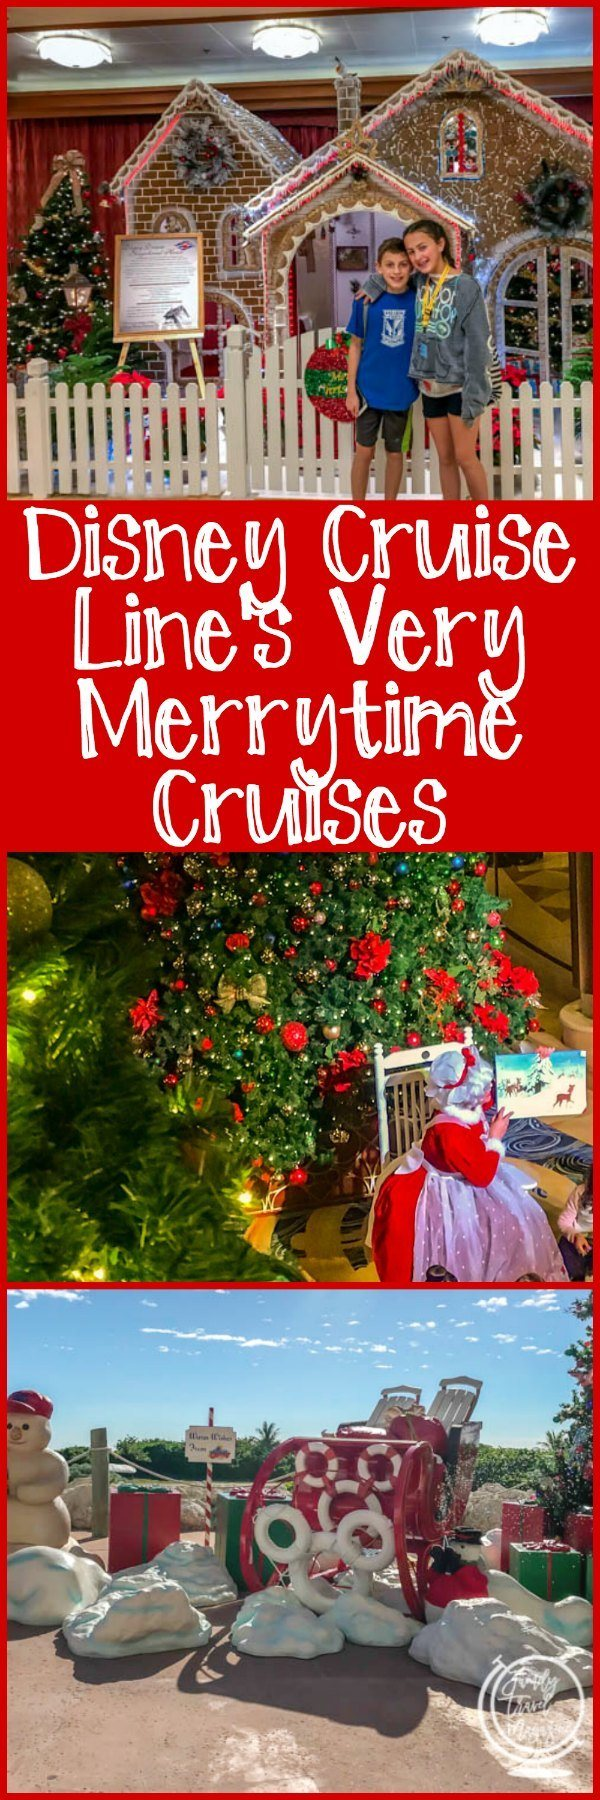 All about the Disney Cruise Line's Very Merrytime Cruises